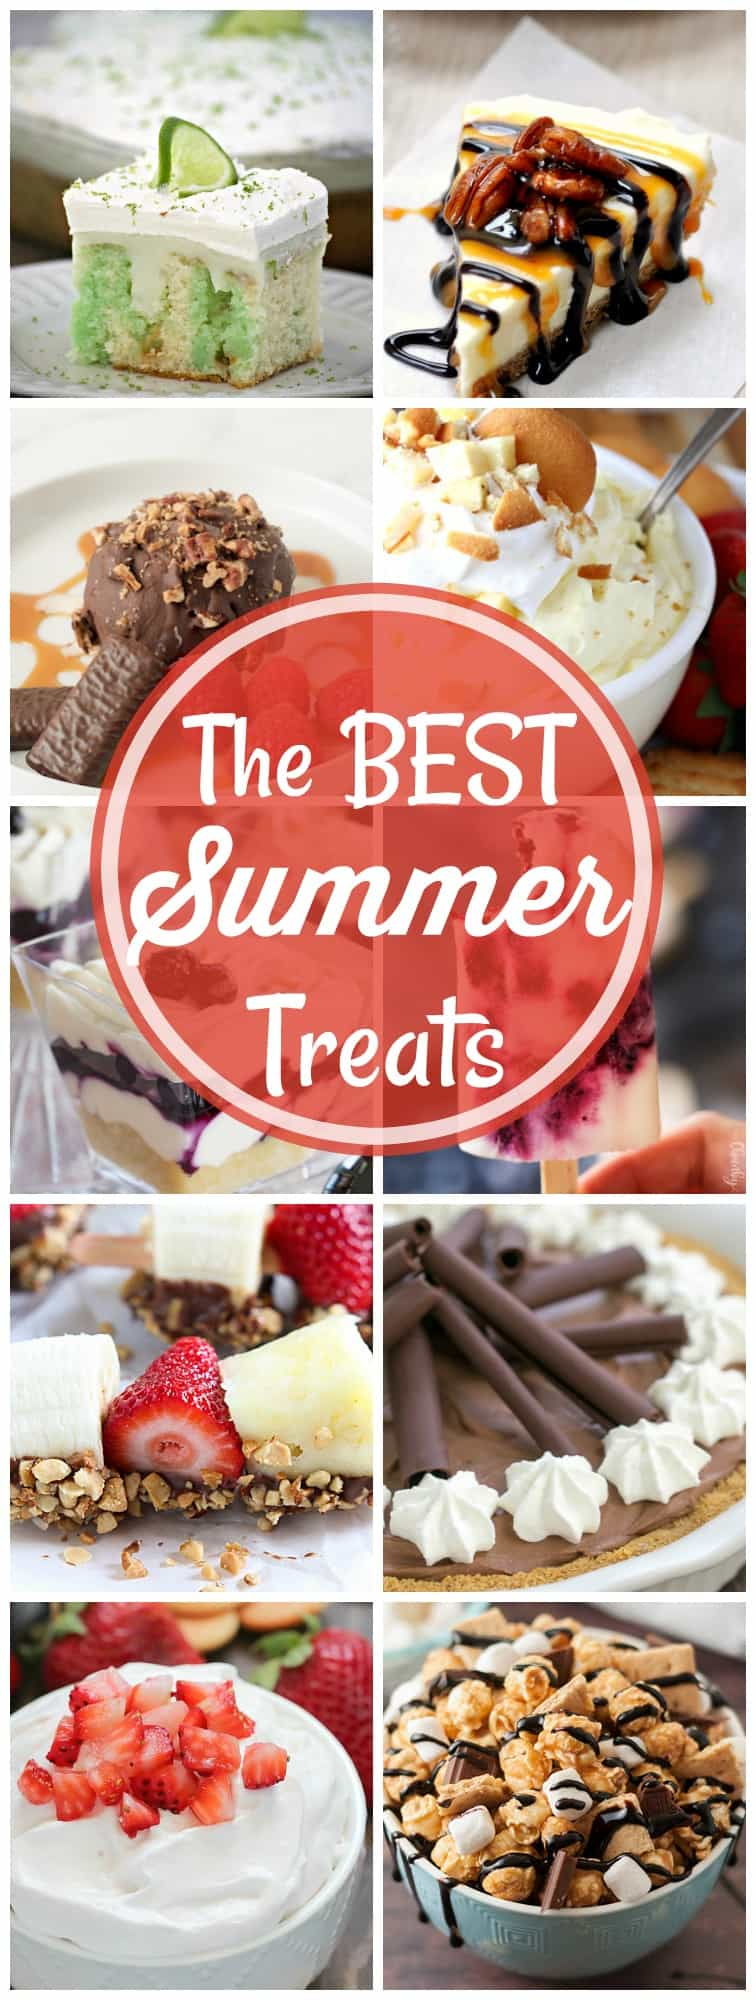 In this compilation of the Best Summer Treats, you'll find something perfect for everyone's taste buds. They're easy treats to celebrate the end of summer!